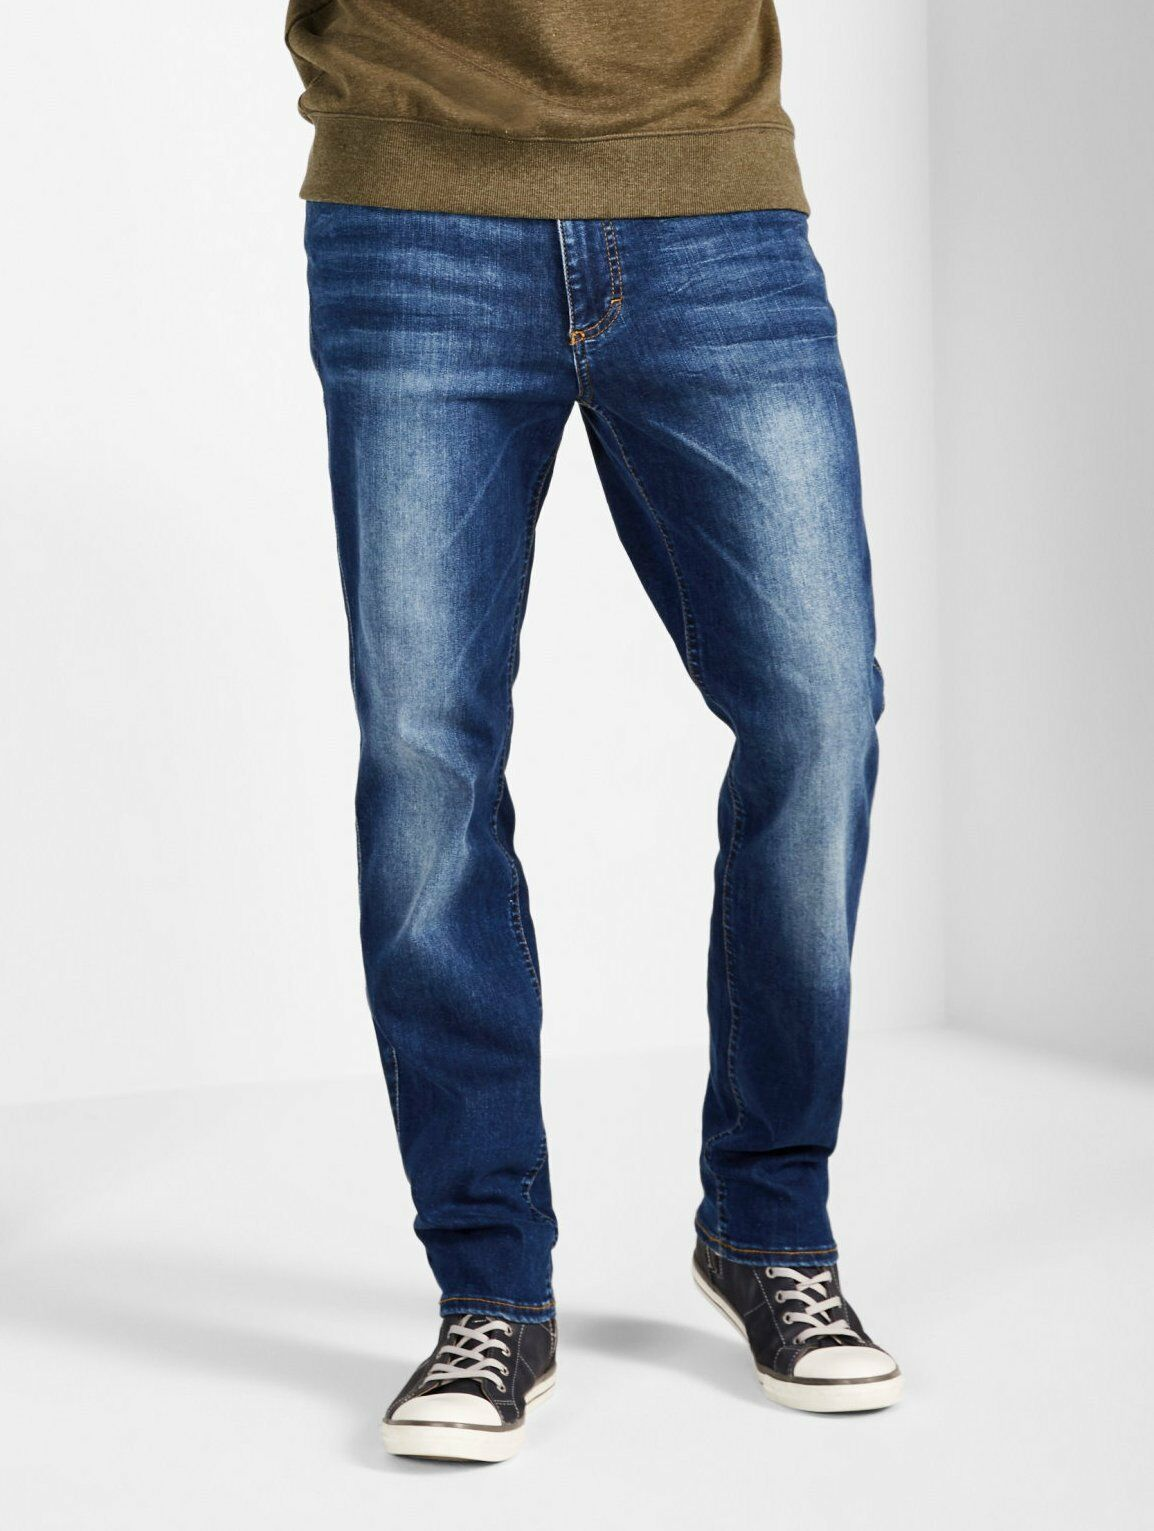 Mustang Tramper Tapered Be Flexible Jeans, Jeans, Jeans, W31 - To - W46 Vintage-Finish aec97c